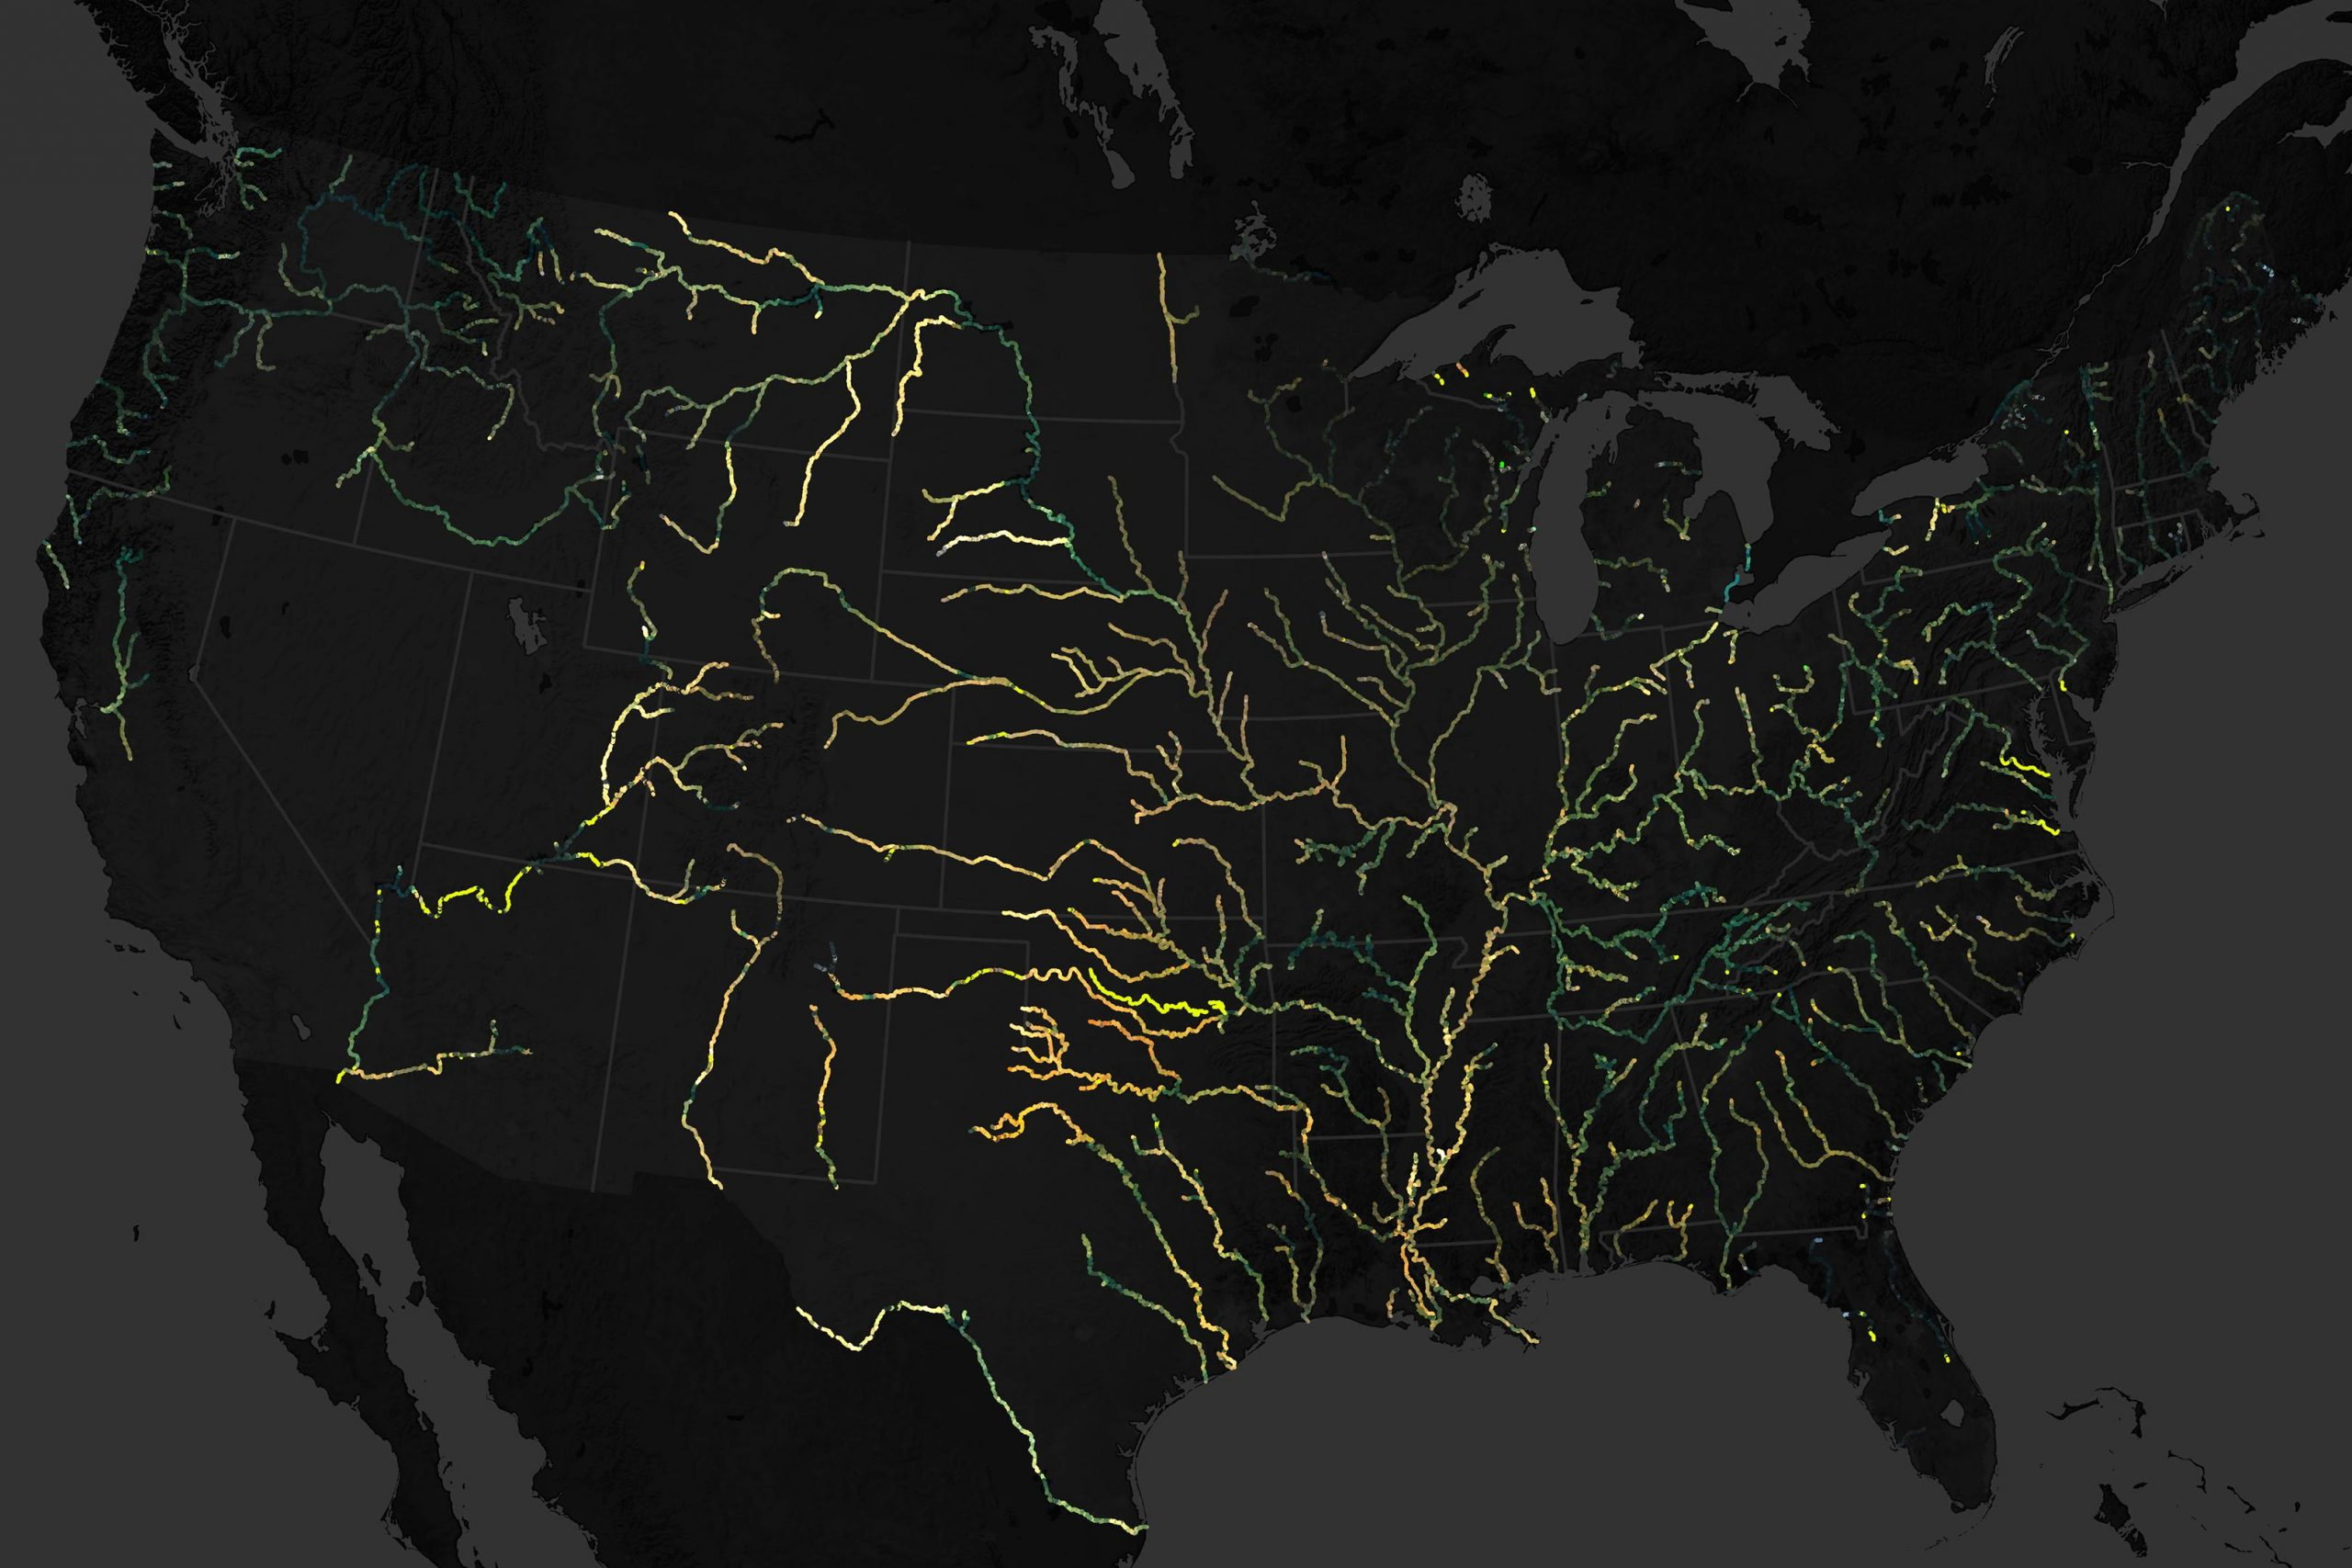 River Colors Across the United States Are Changing